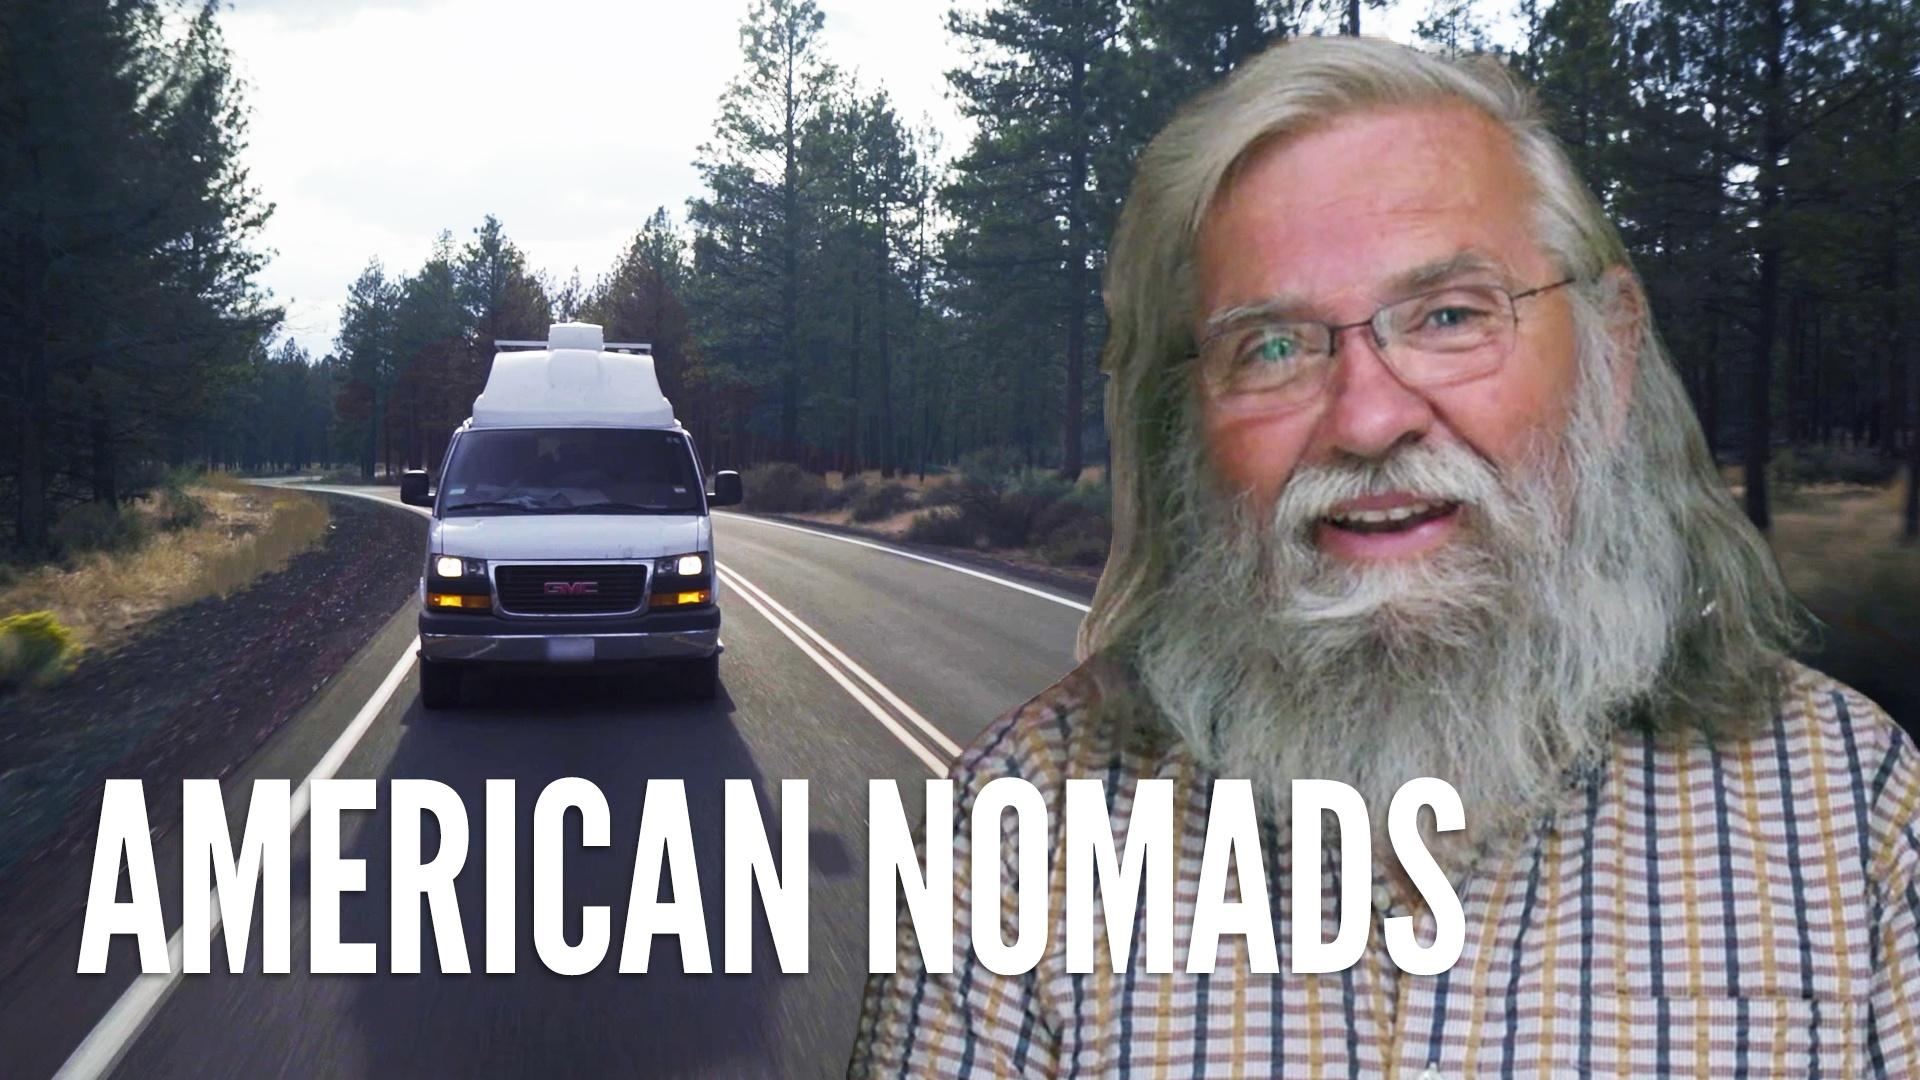 Thumbnail for: How Bob Wells Lives His Best Life in a Van | American Nomads, Ep. 1